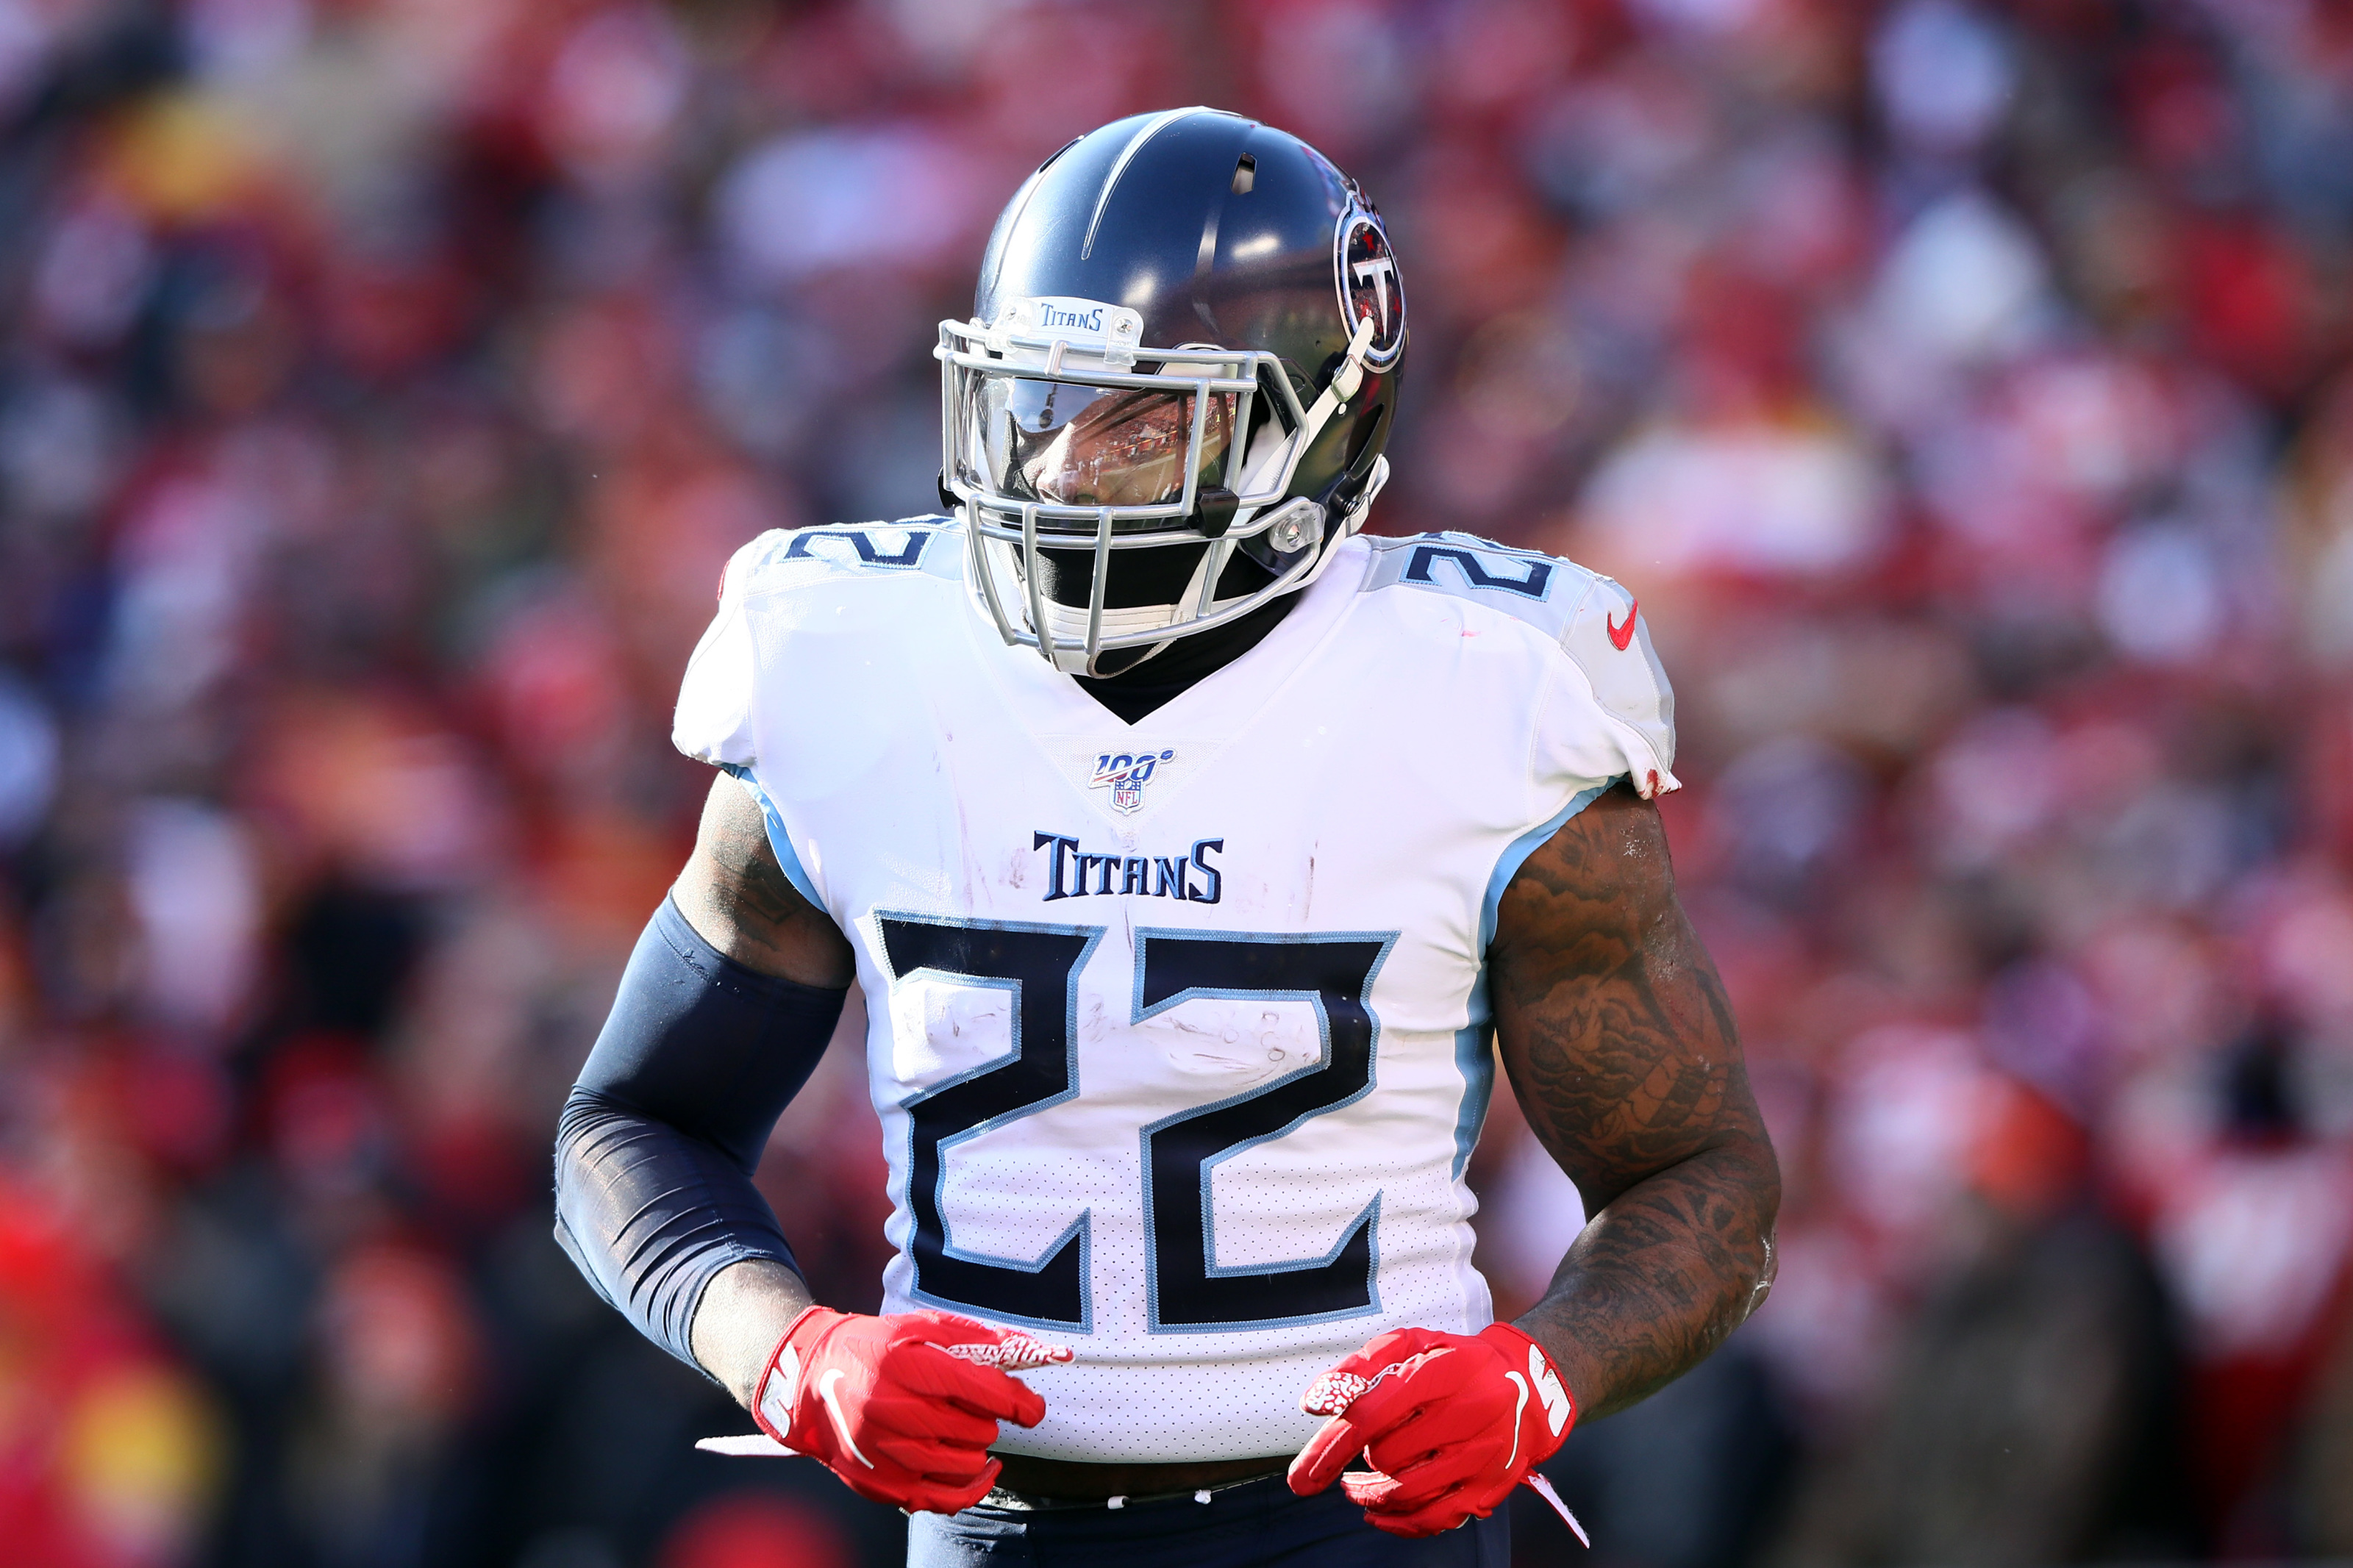 Tennessee Titans and RB Derrick Henry working towards long ...Derrick Henry